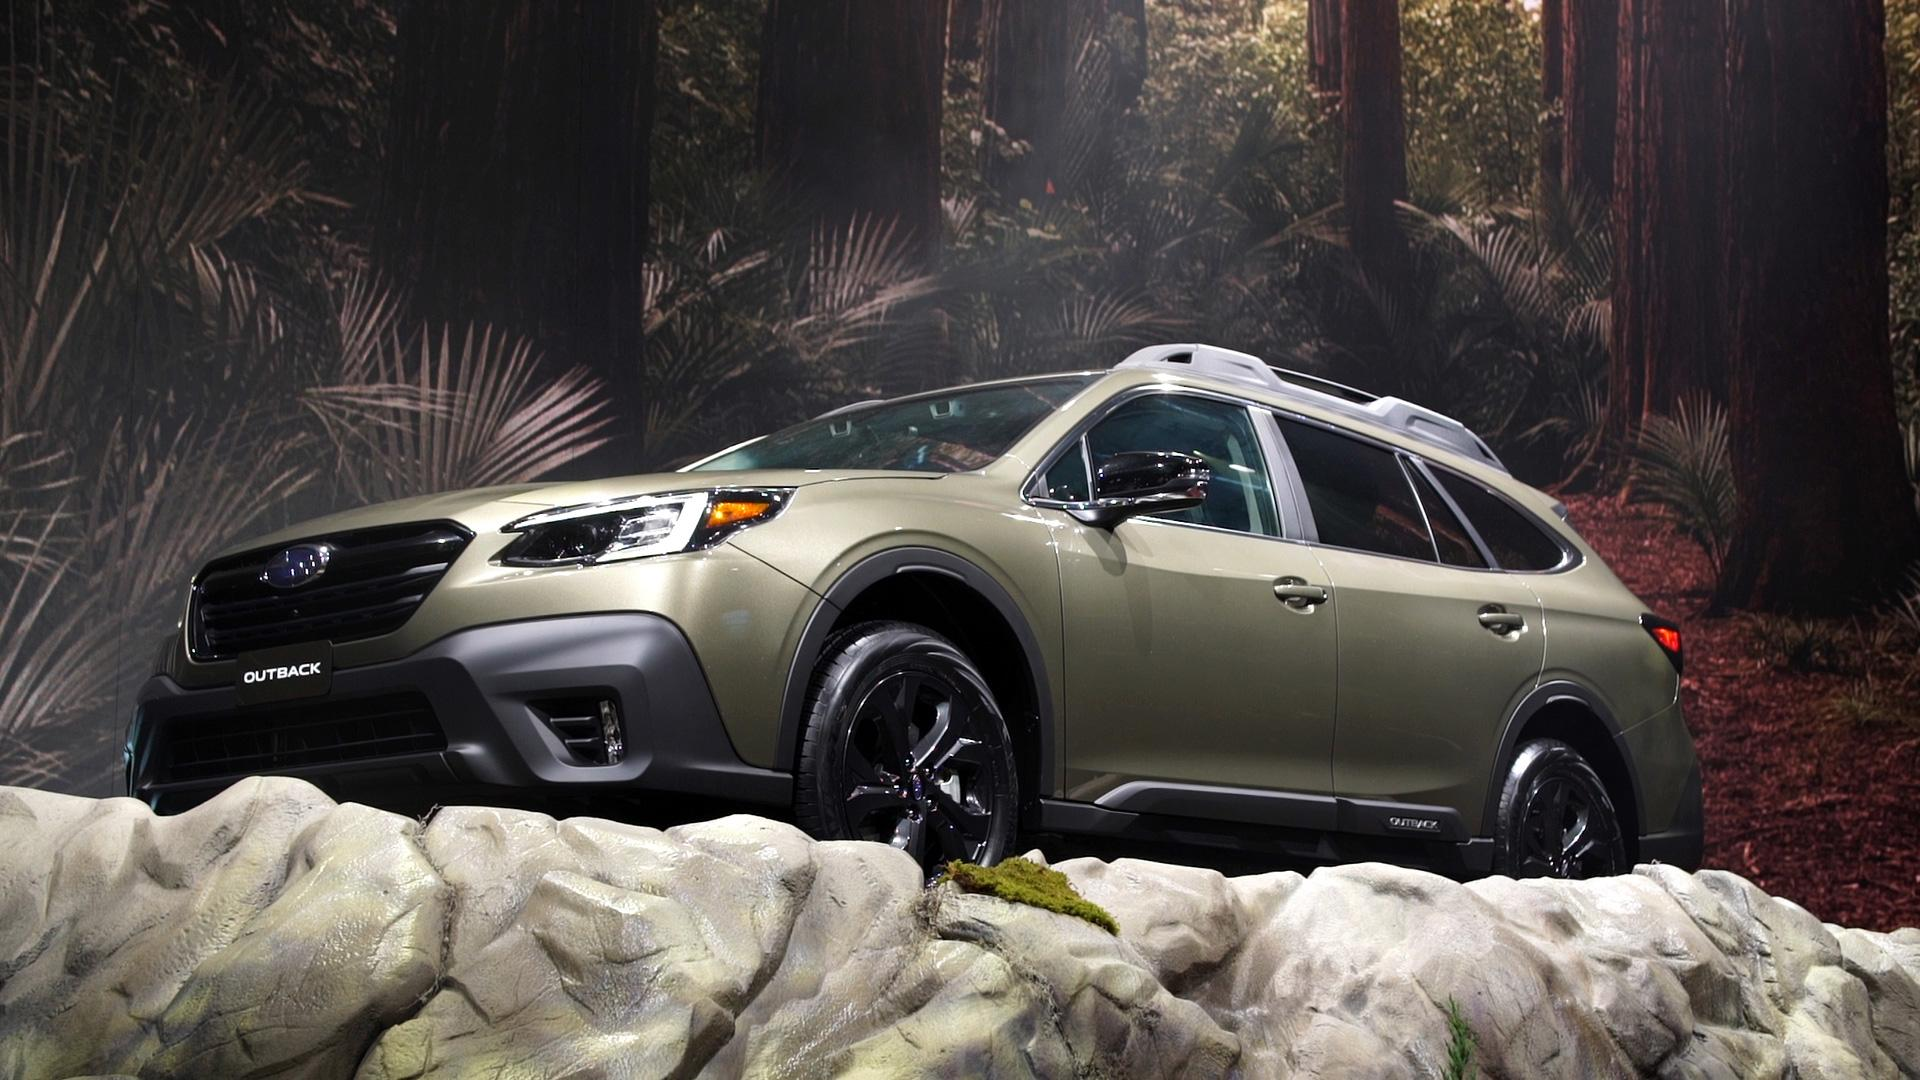 2020 Subaru Forester Redesign, Turbo, Review, And Engine Options >> 2020 Subaru Outback Consumer Reports